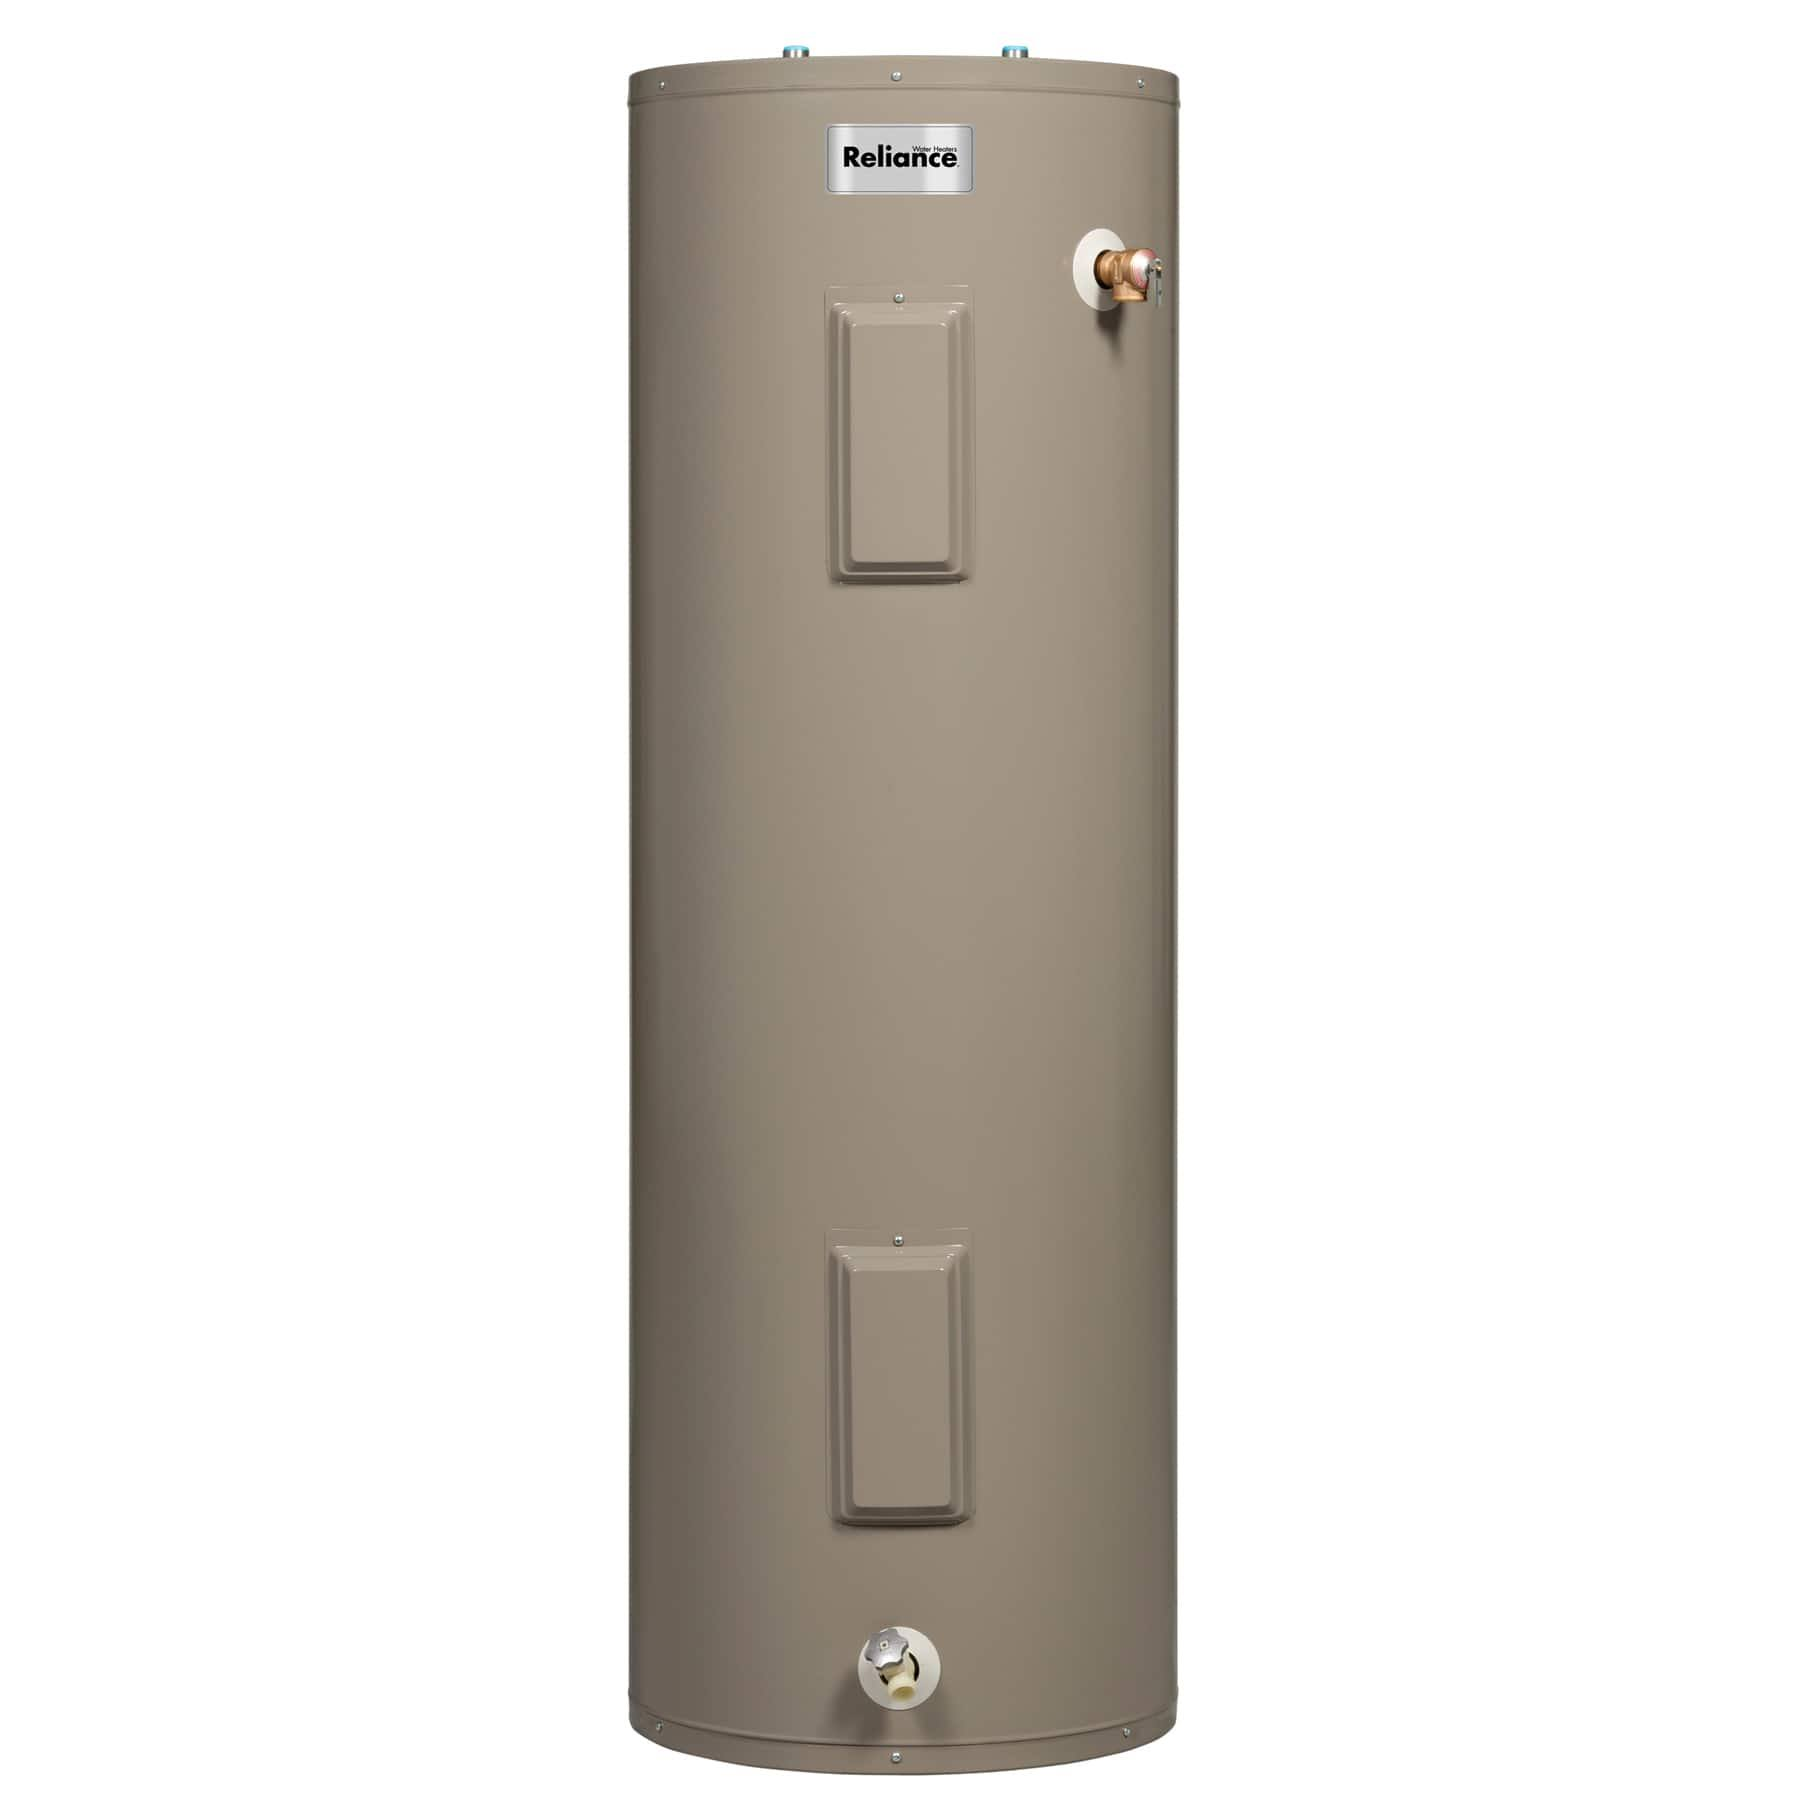 Reliance Standard Electric Water Heater - 40gal